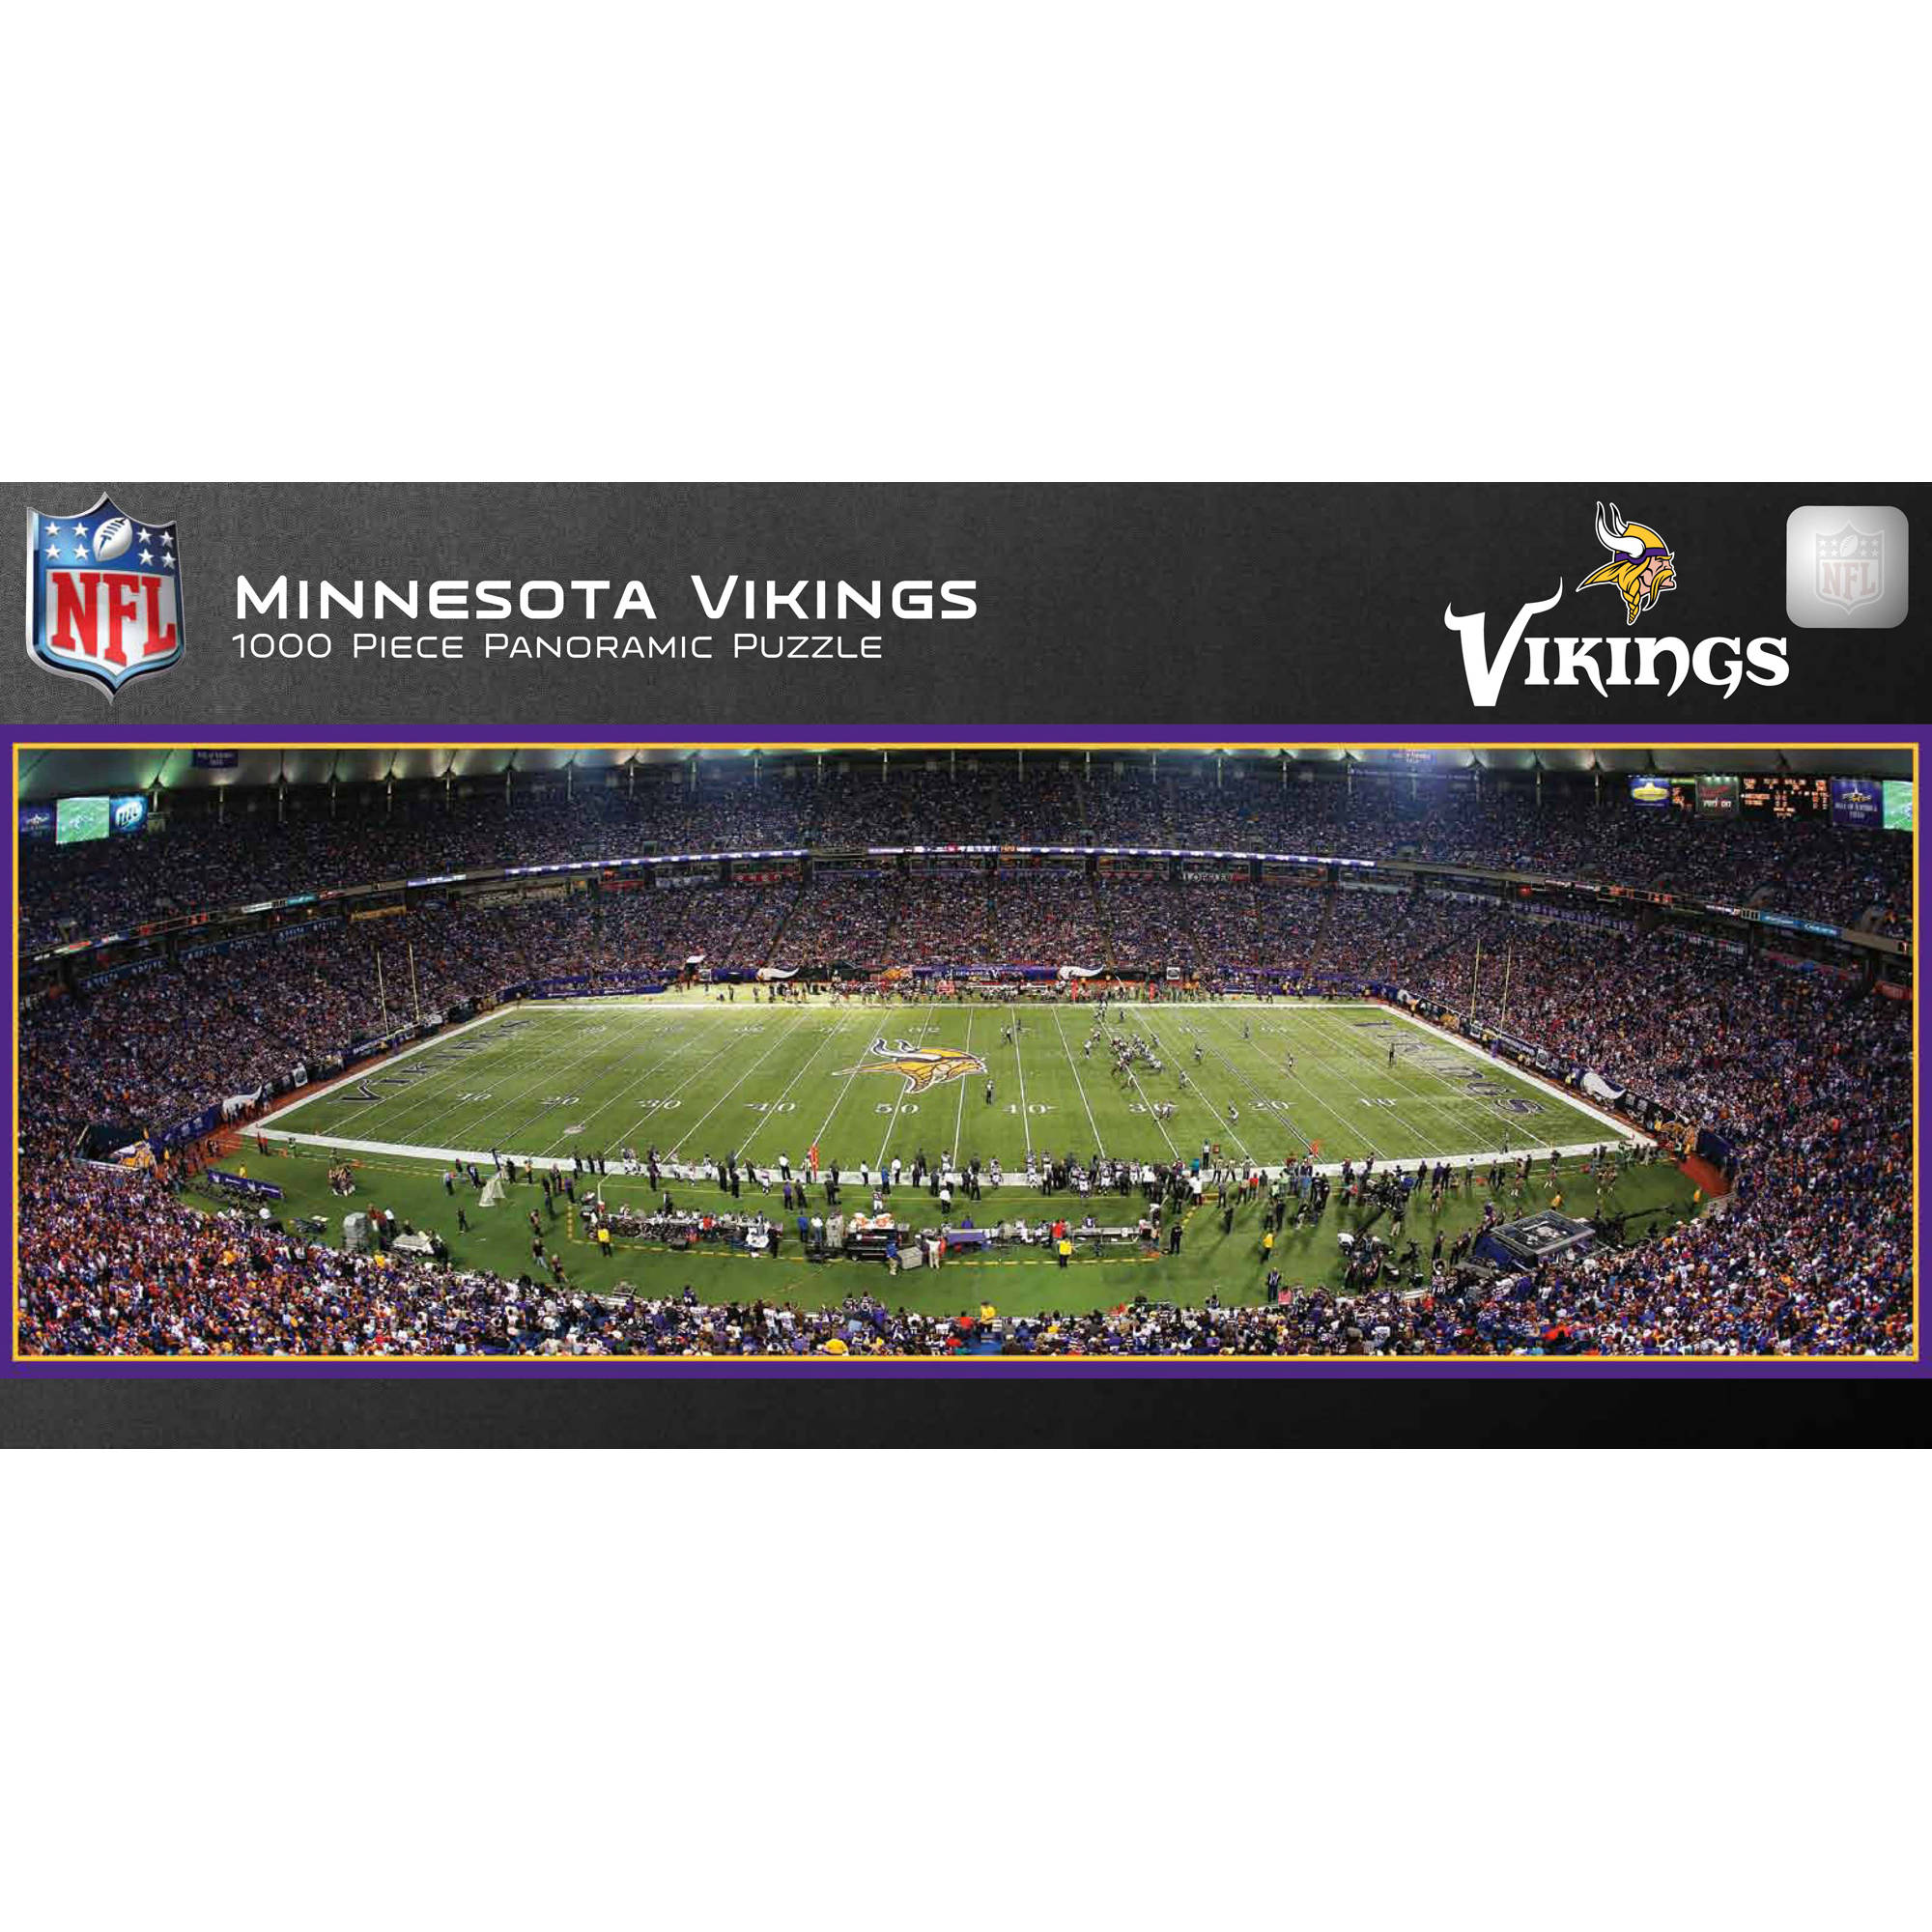 Master Pieces Minnesota Vikings Panoramic Stadium Puzzle, 1,000 Pieces